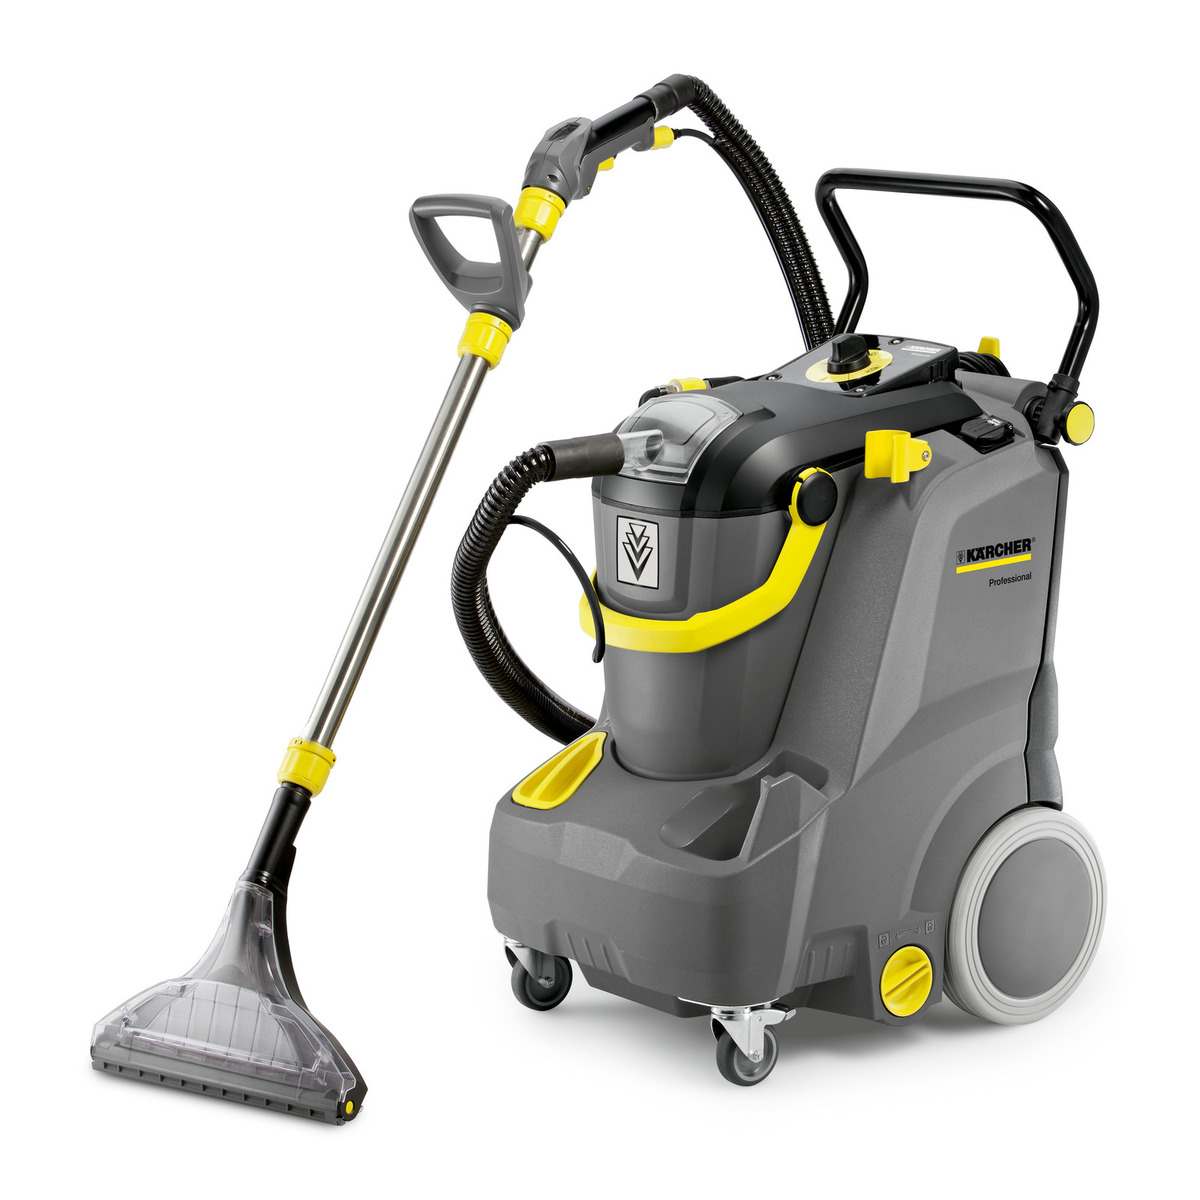 Karcher Carpet & Upholstery Spray Extraction Cleaner Puzzi 30/4e